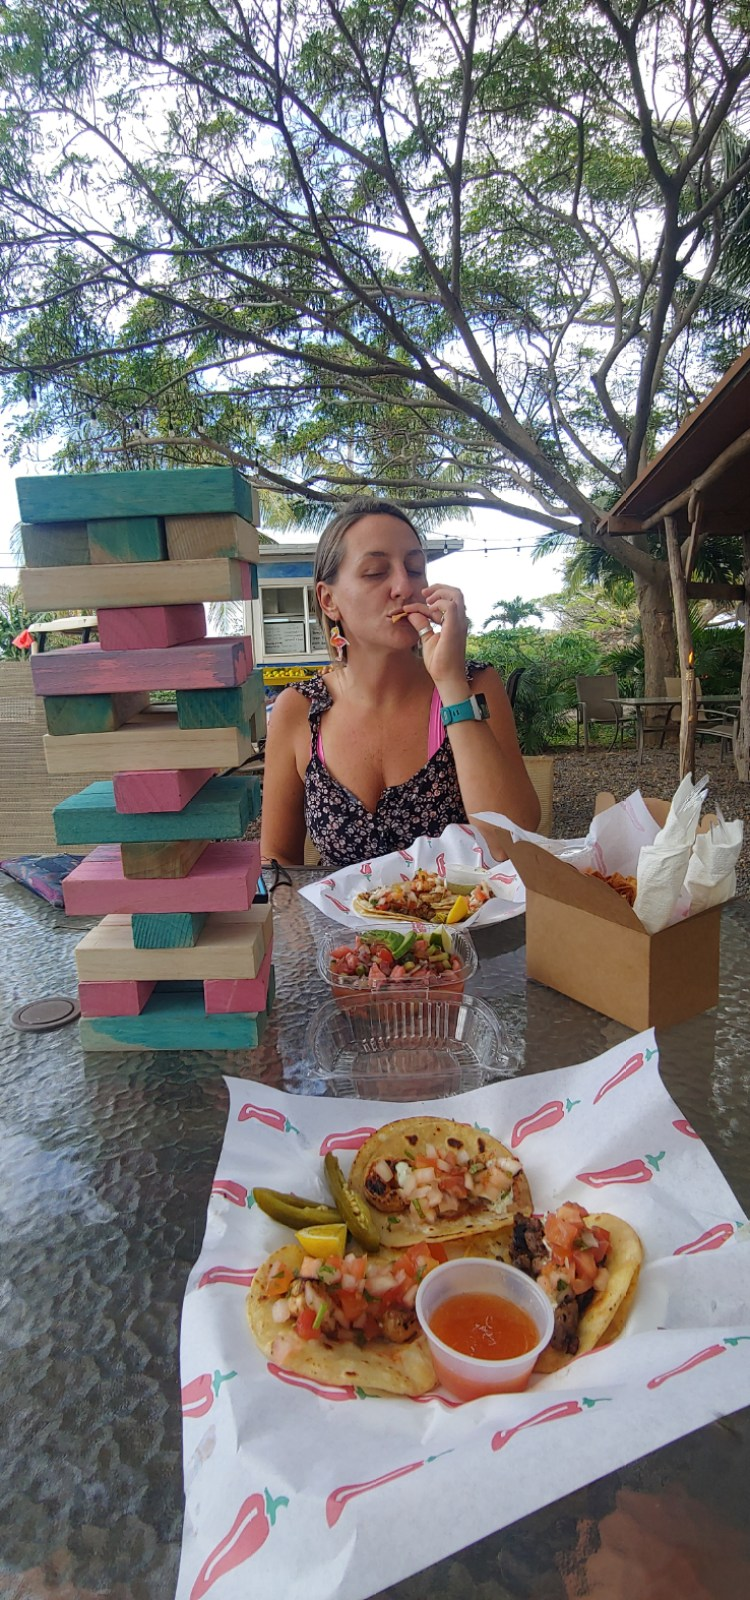 Maui Happy Hours getting tacos in Sprecklesville Maui